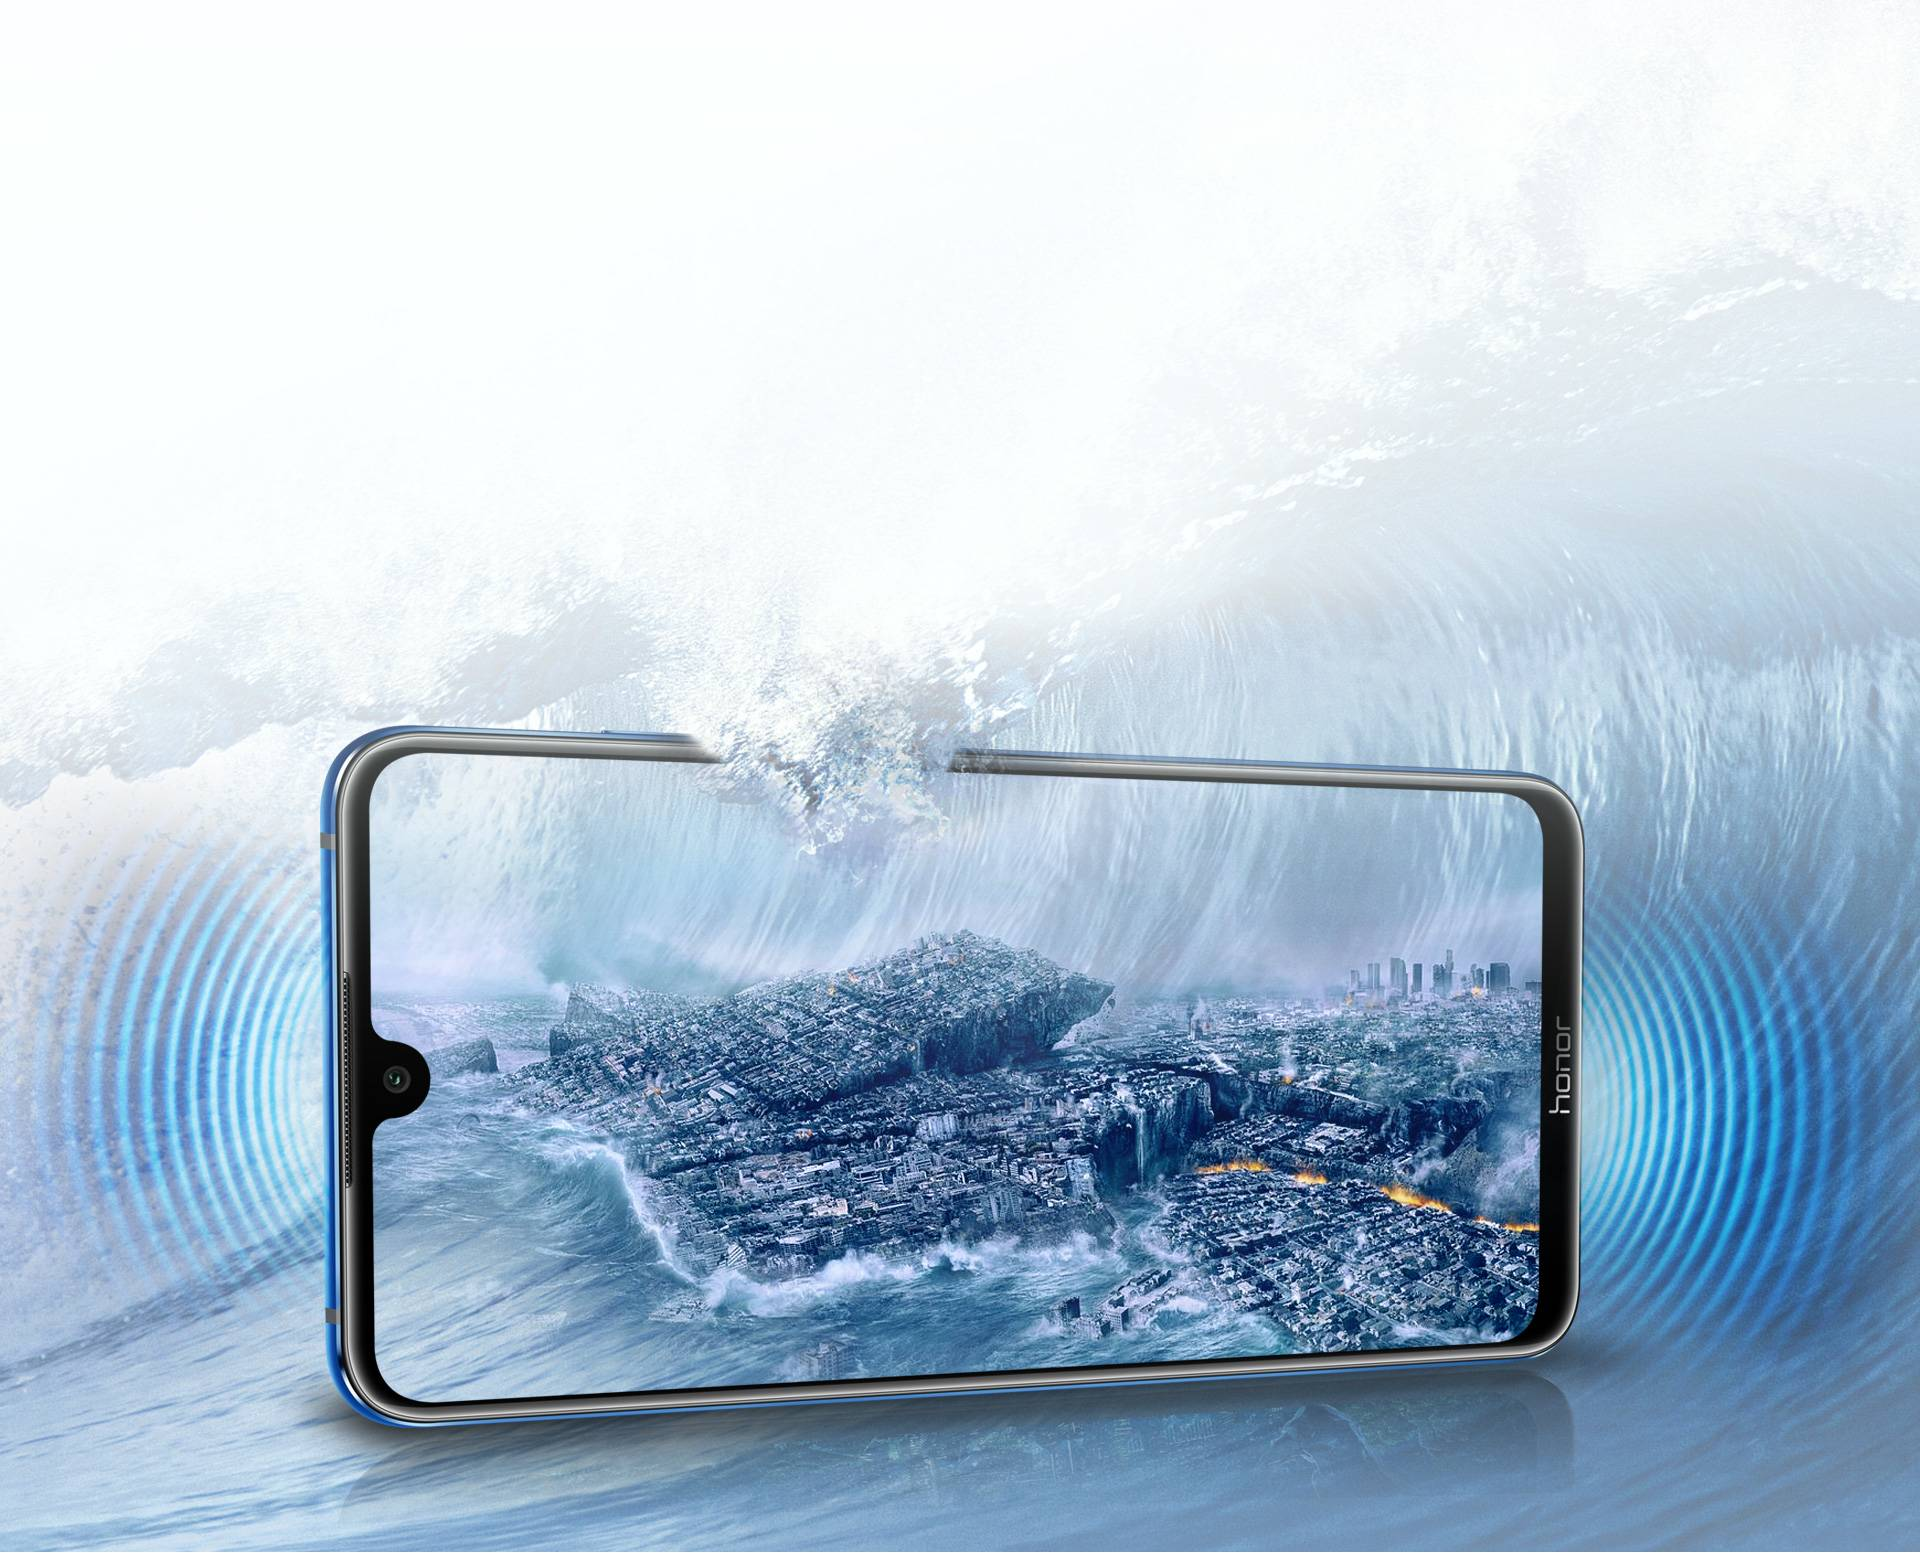 HONOR 8X Max Specs/Price/Review: 7-inch Android Smartphone | HONOR